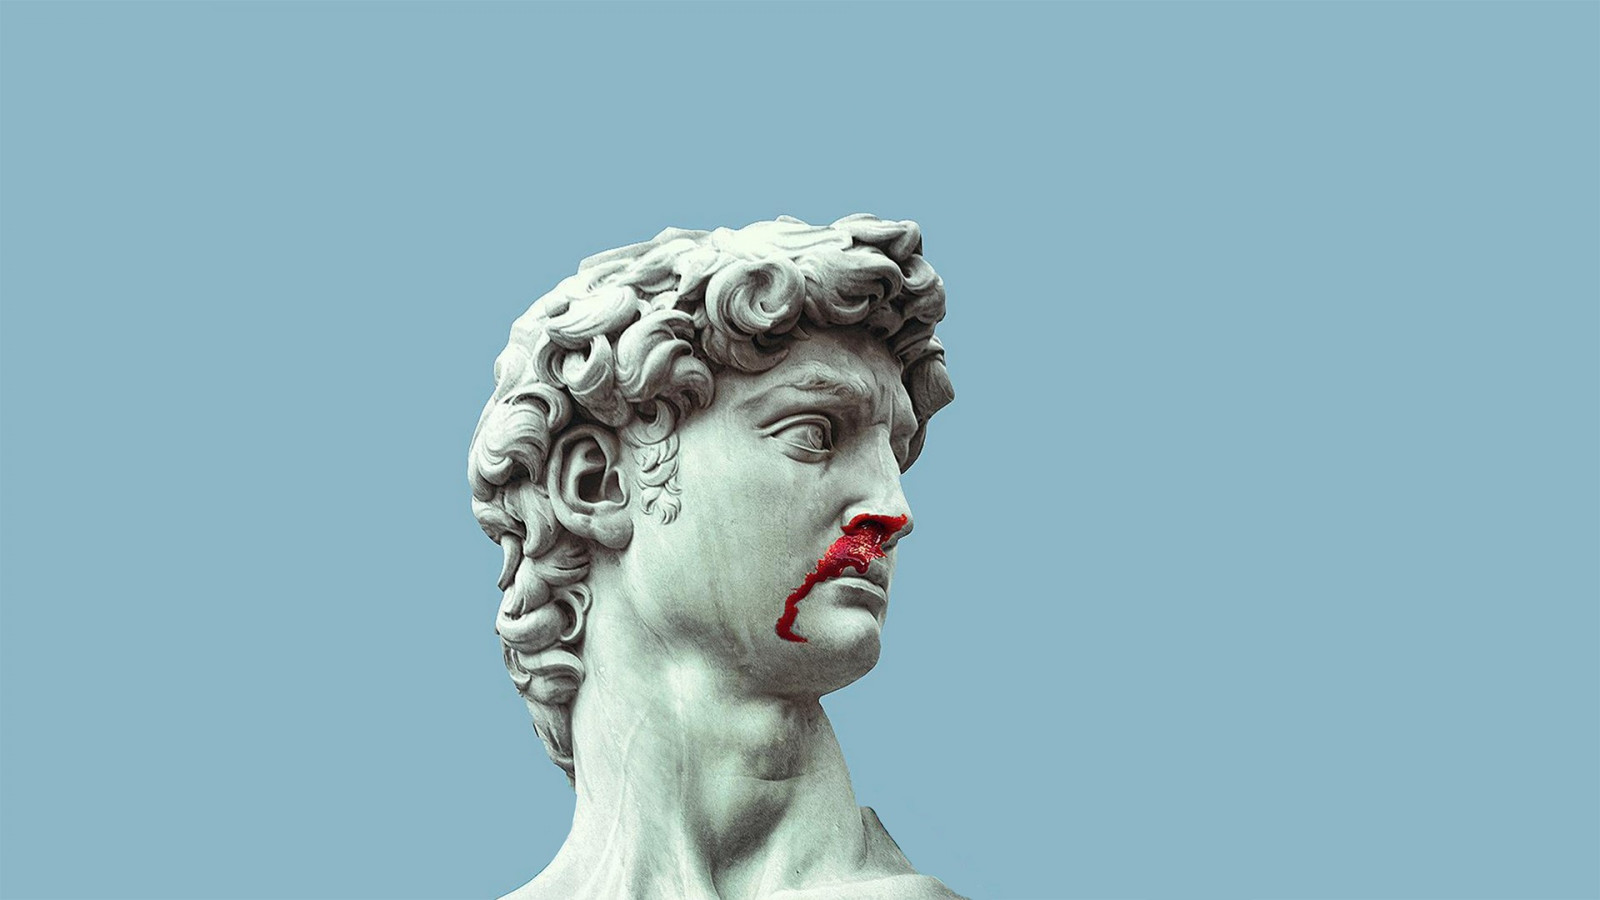 Vintage Car Hd Wallpapers For Pc Wallpaper 1920x1080 Px Blood Marble Statue Of David